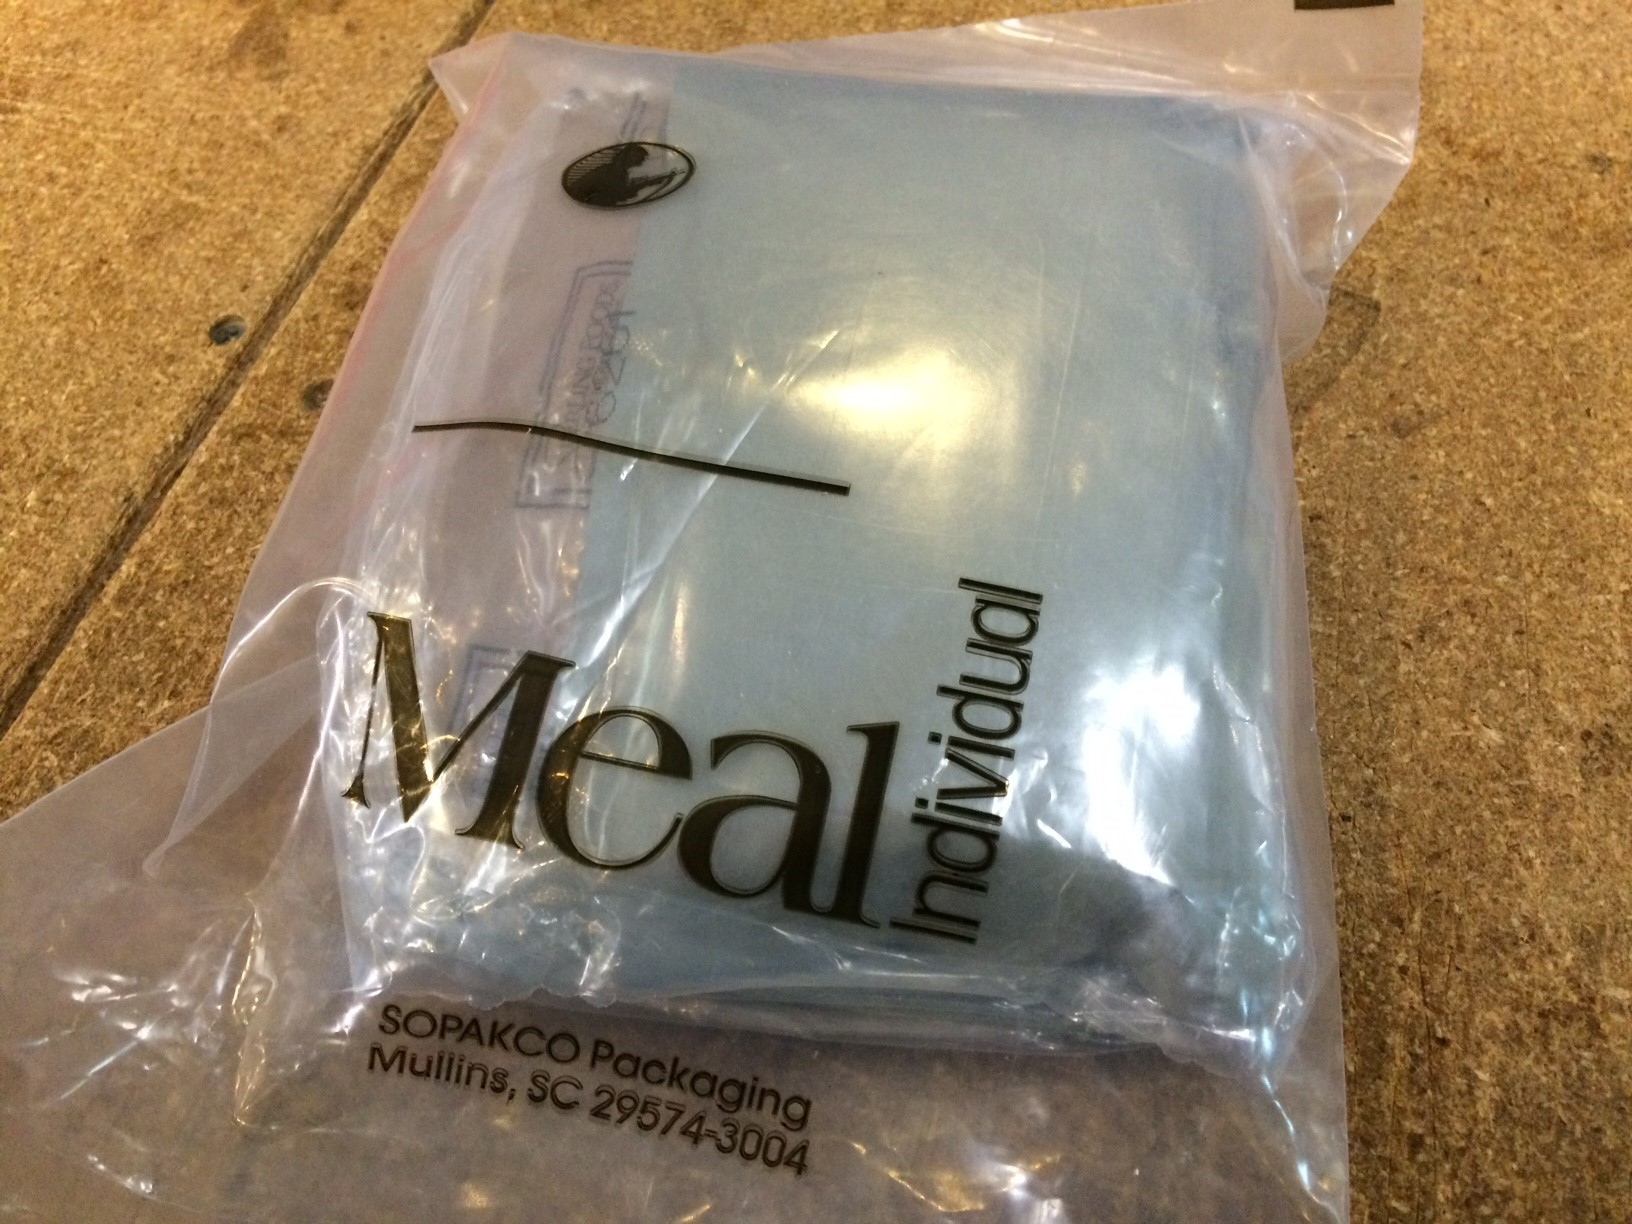 Massive hurricanes across the country dealt a blow to The Epicenter, a Eugene company that sells MREs - meals that are ready to eat. (SBG)